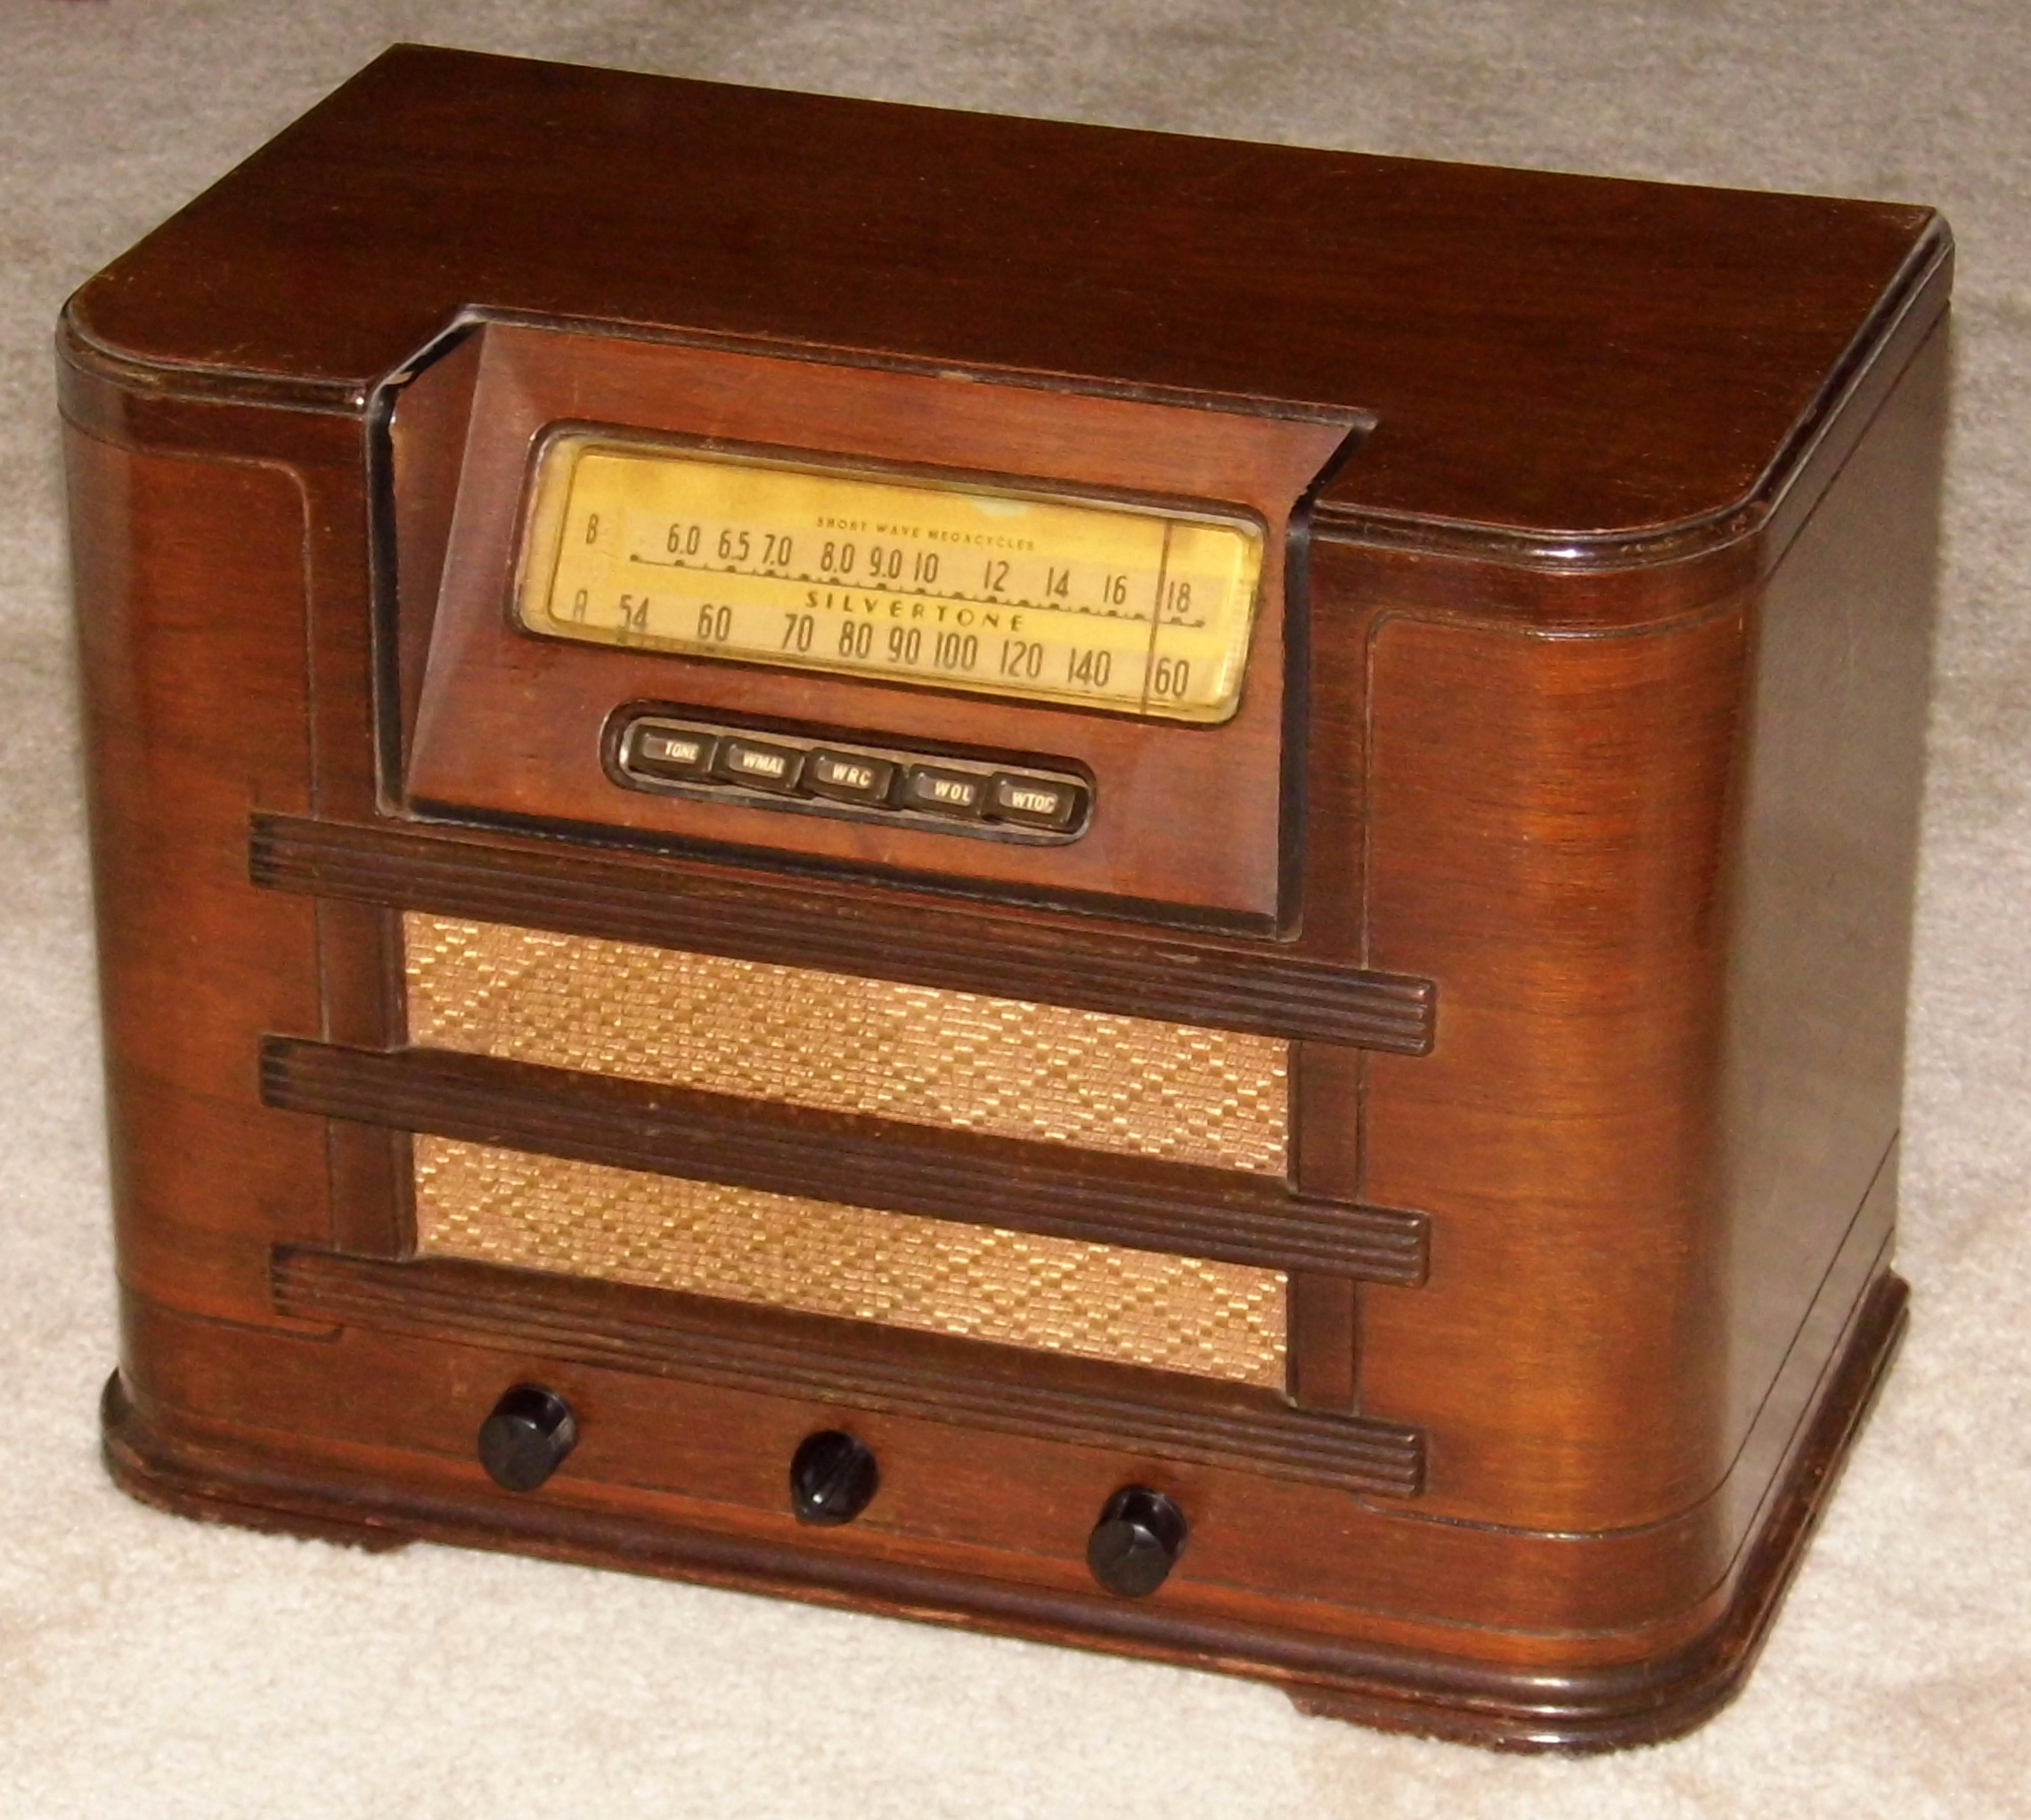 August 2014 Cpo Offers Table Jpg: File:Vintage Silvertone Wood Table Radio With Push Buttons